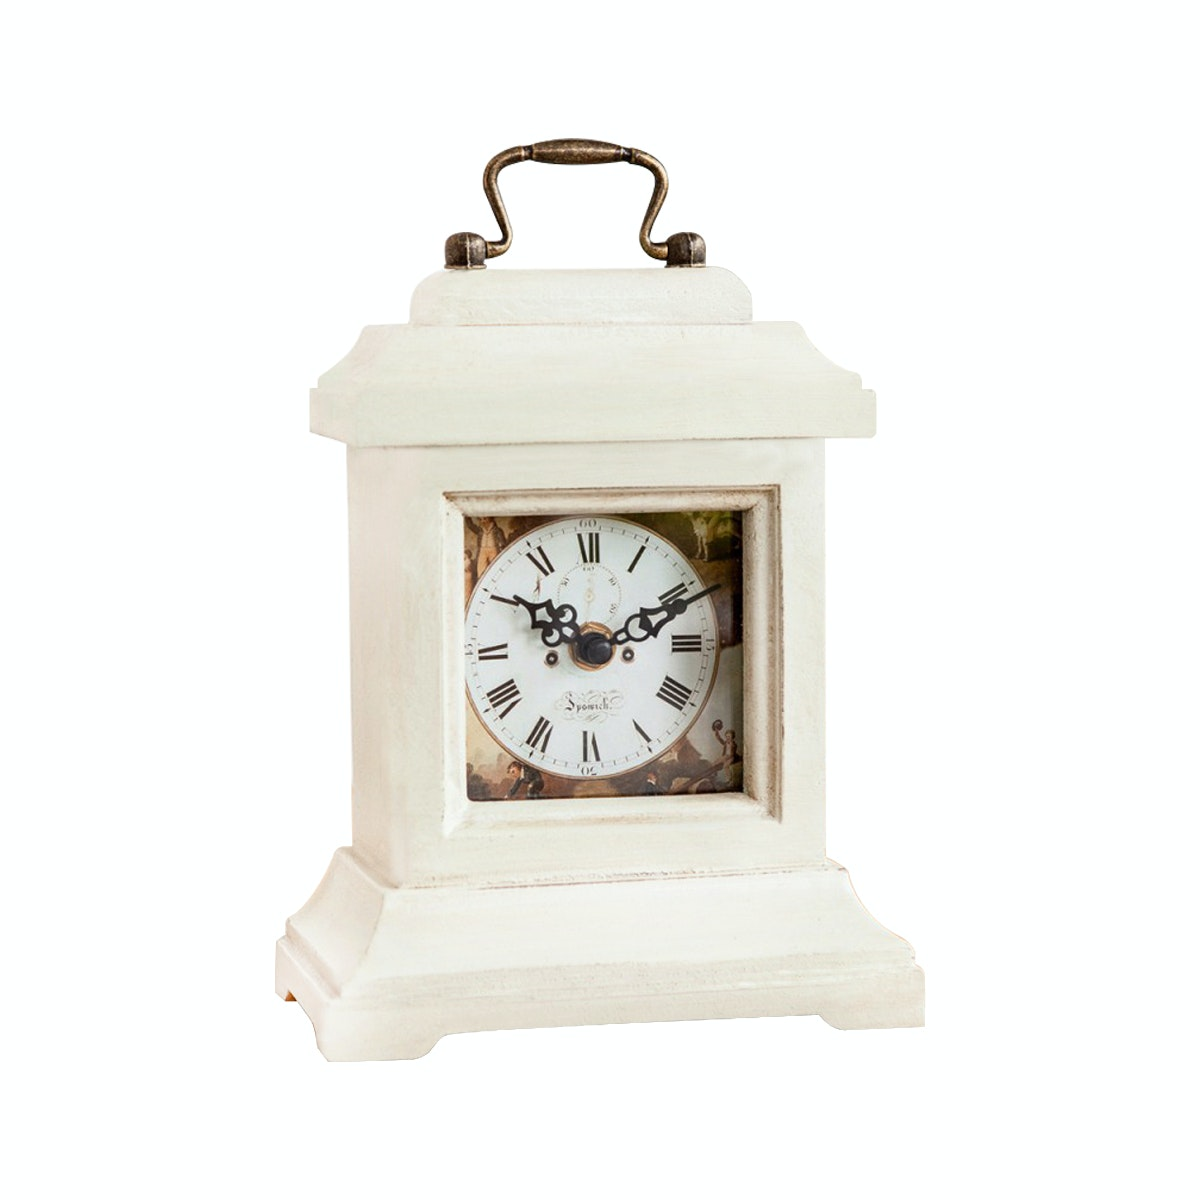 Palmerhaus Rome Table Clock